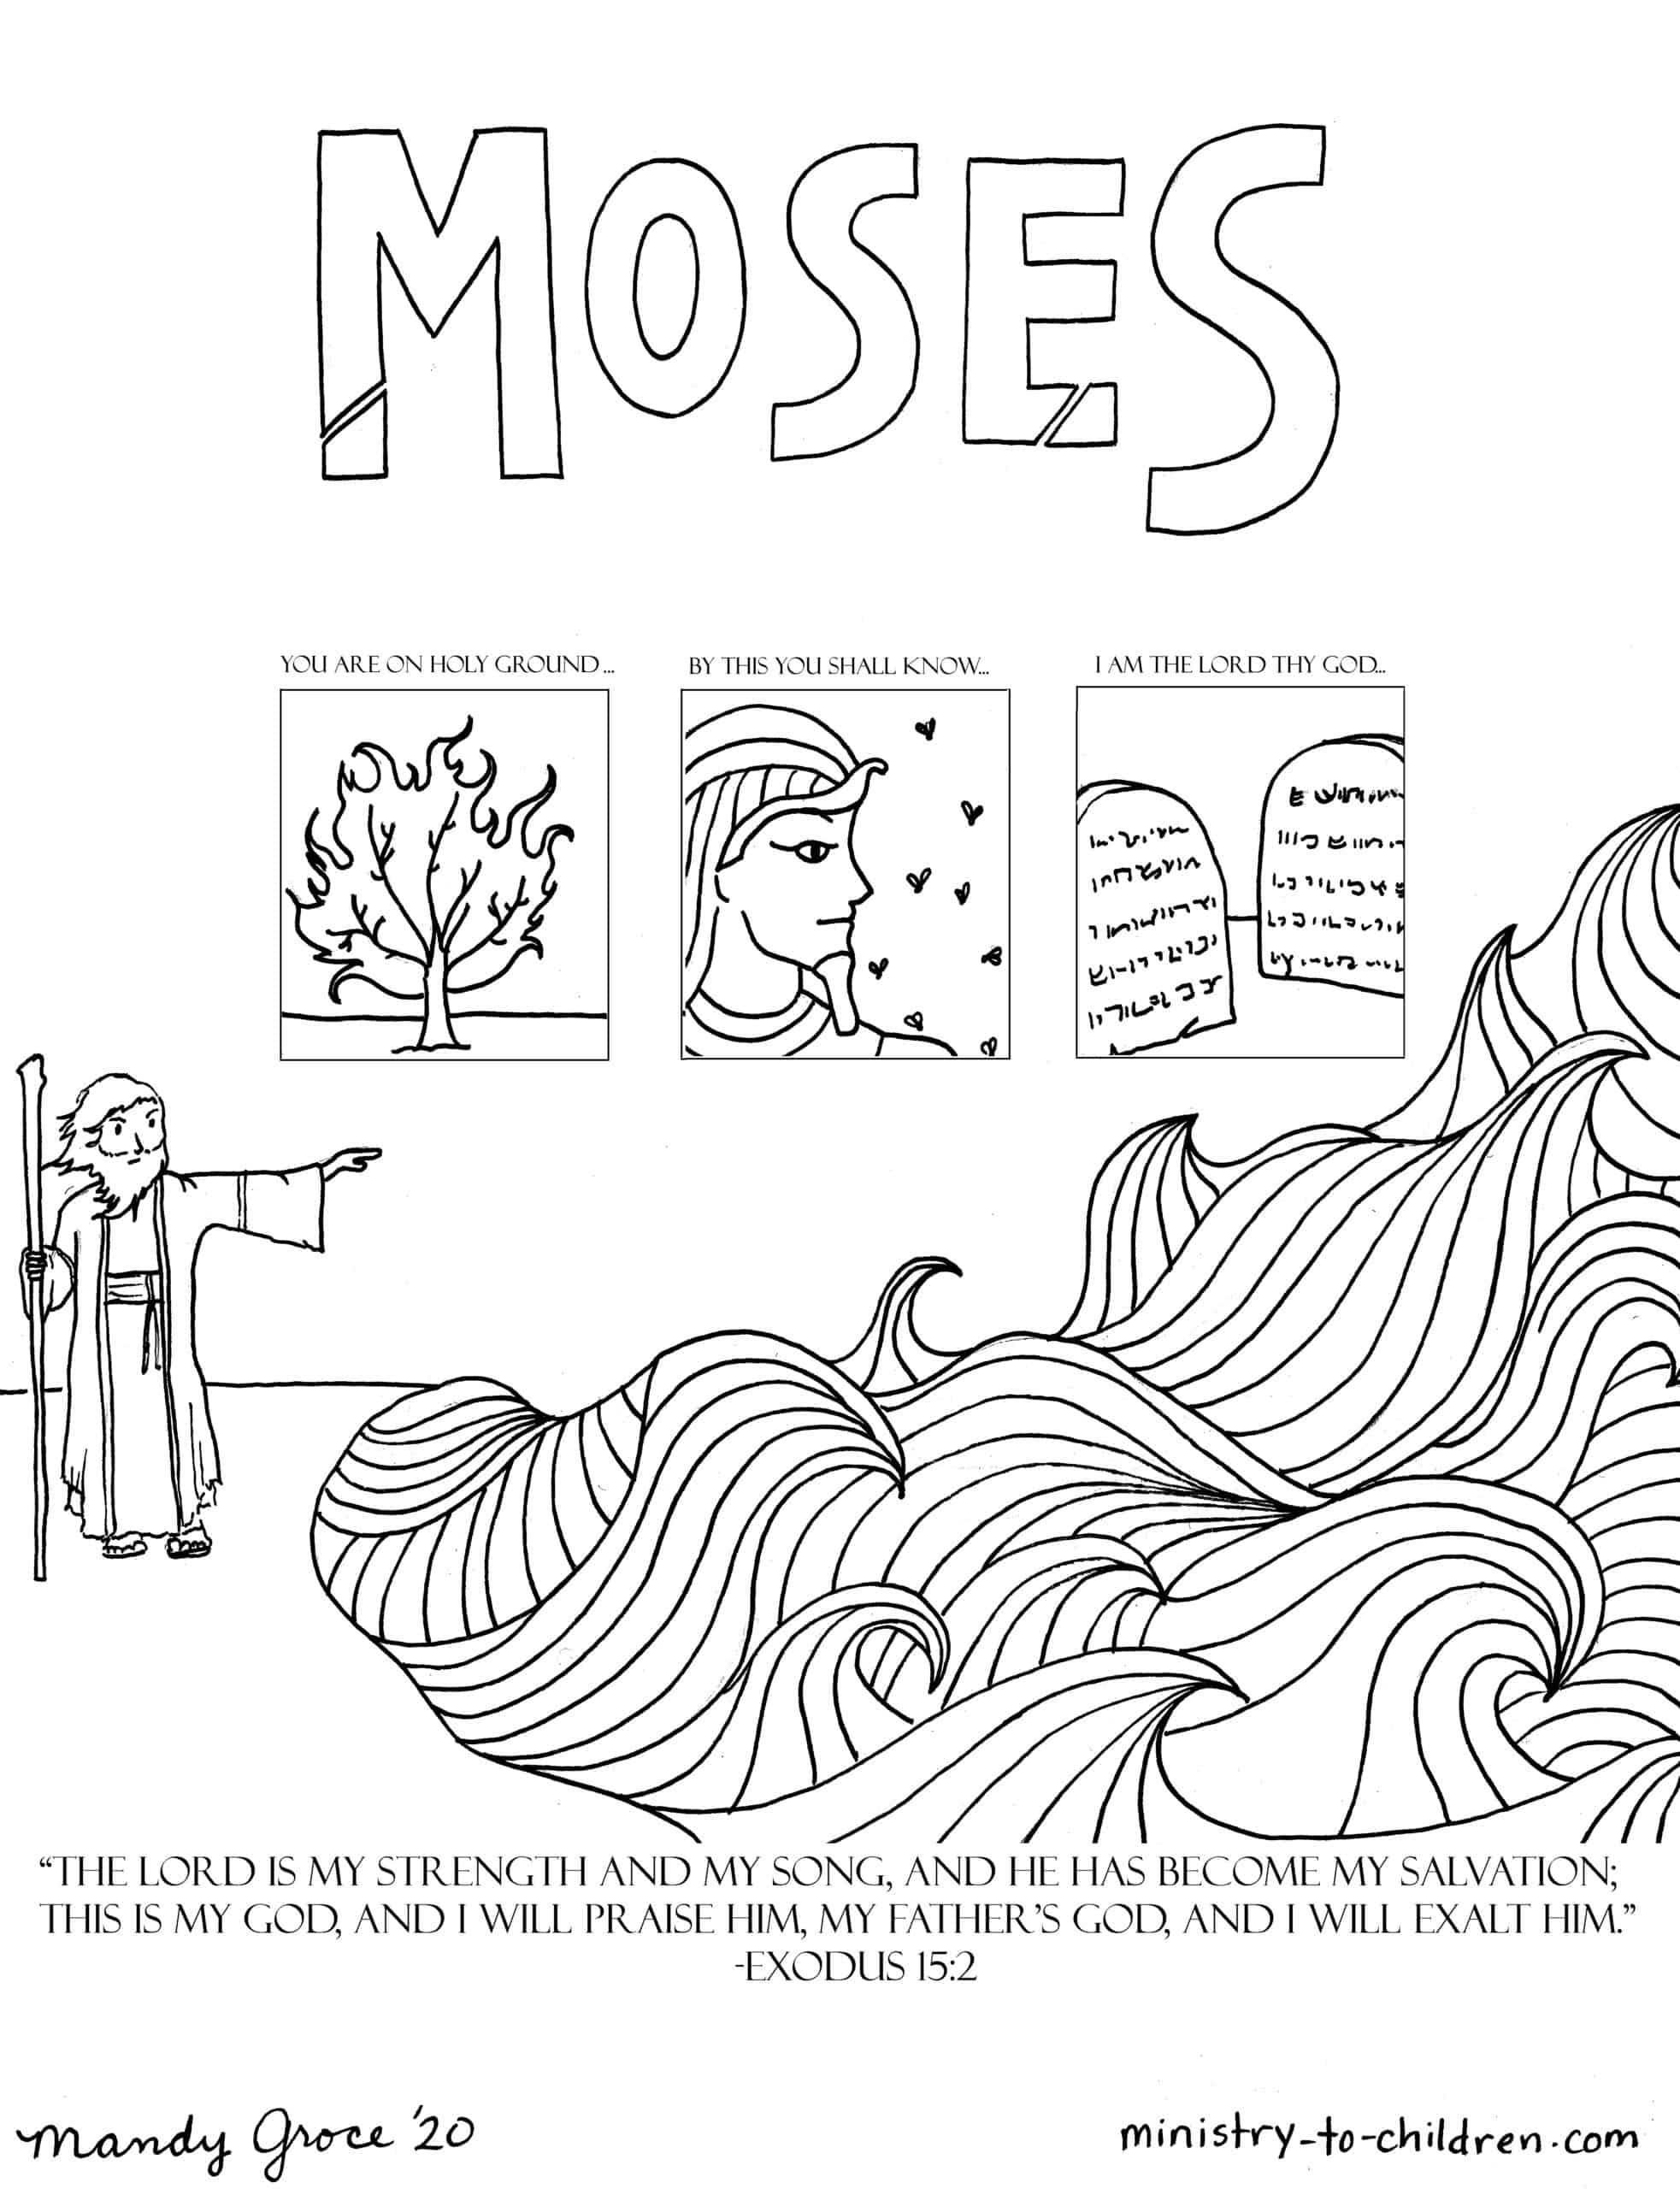 Moses Coloring Page Ministry To Children